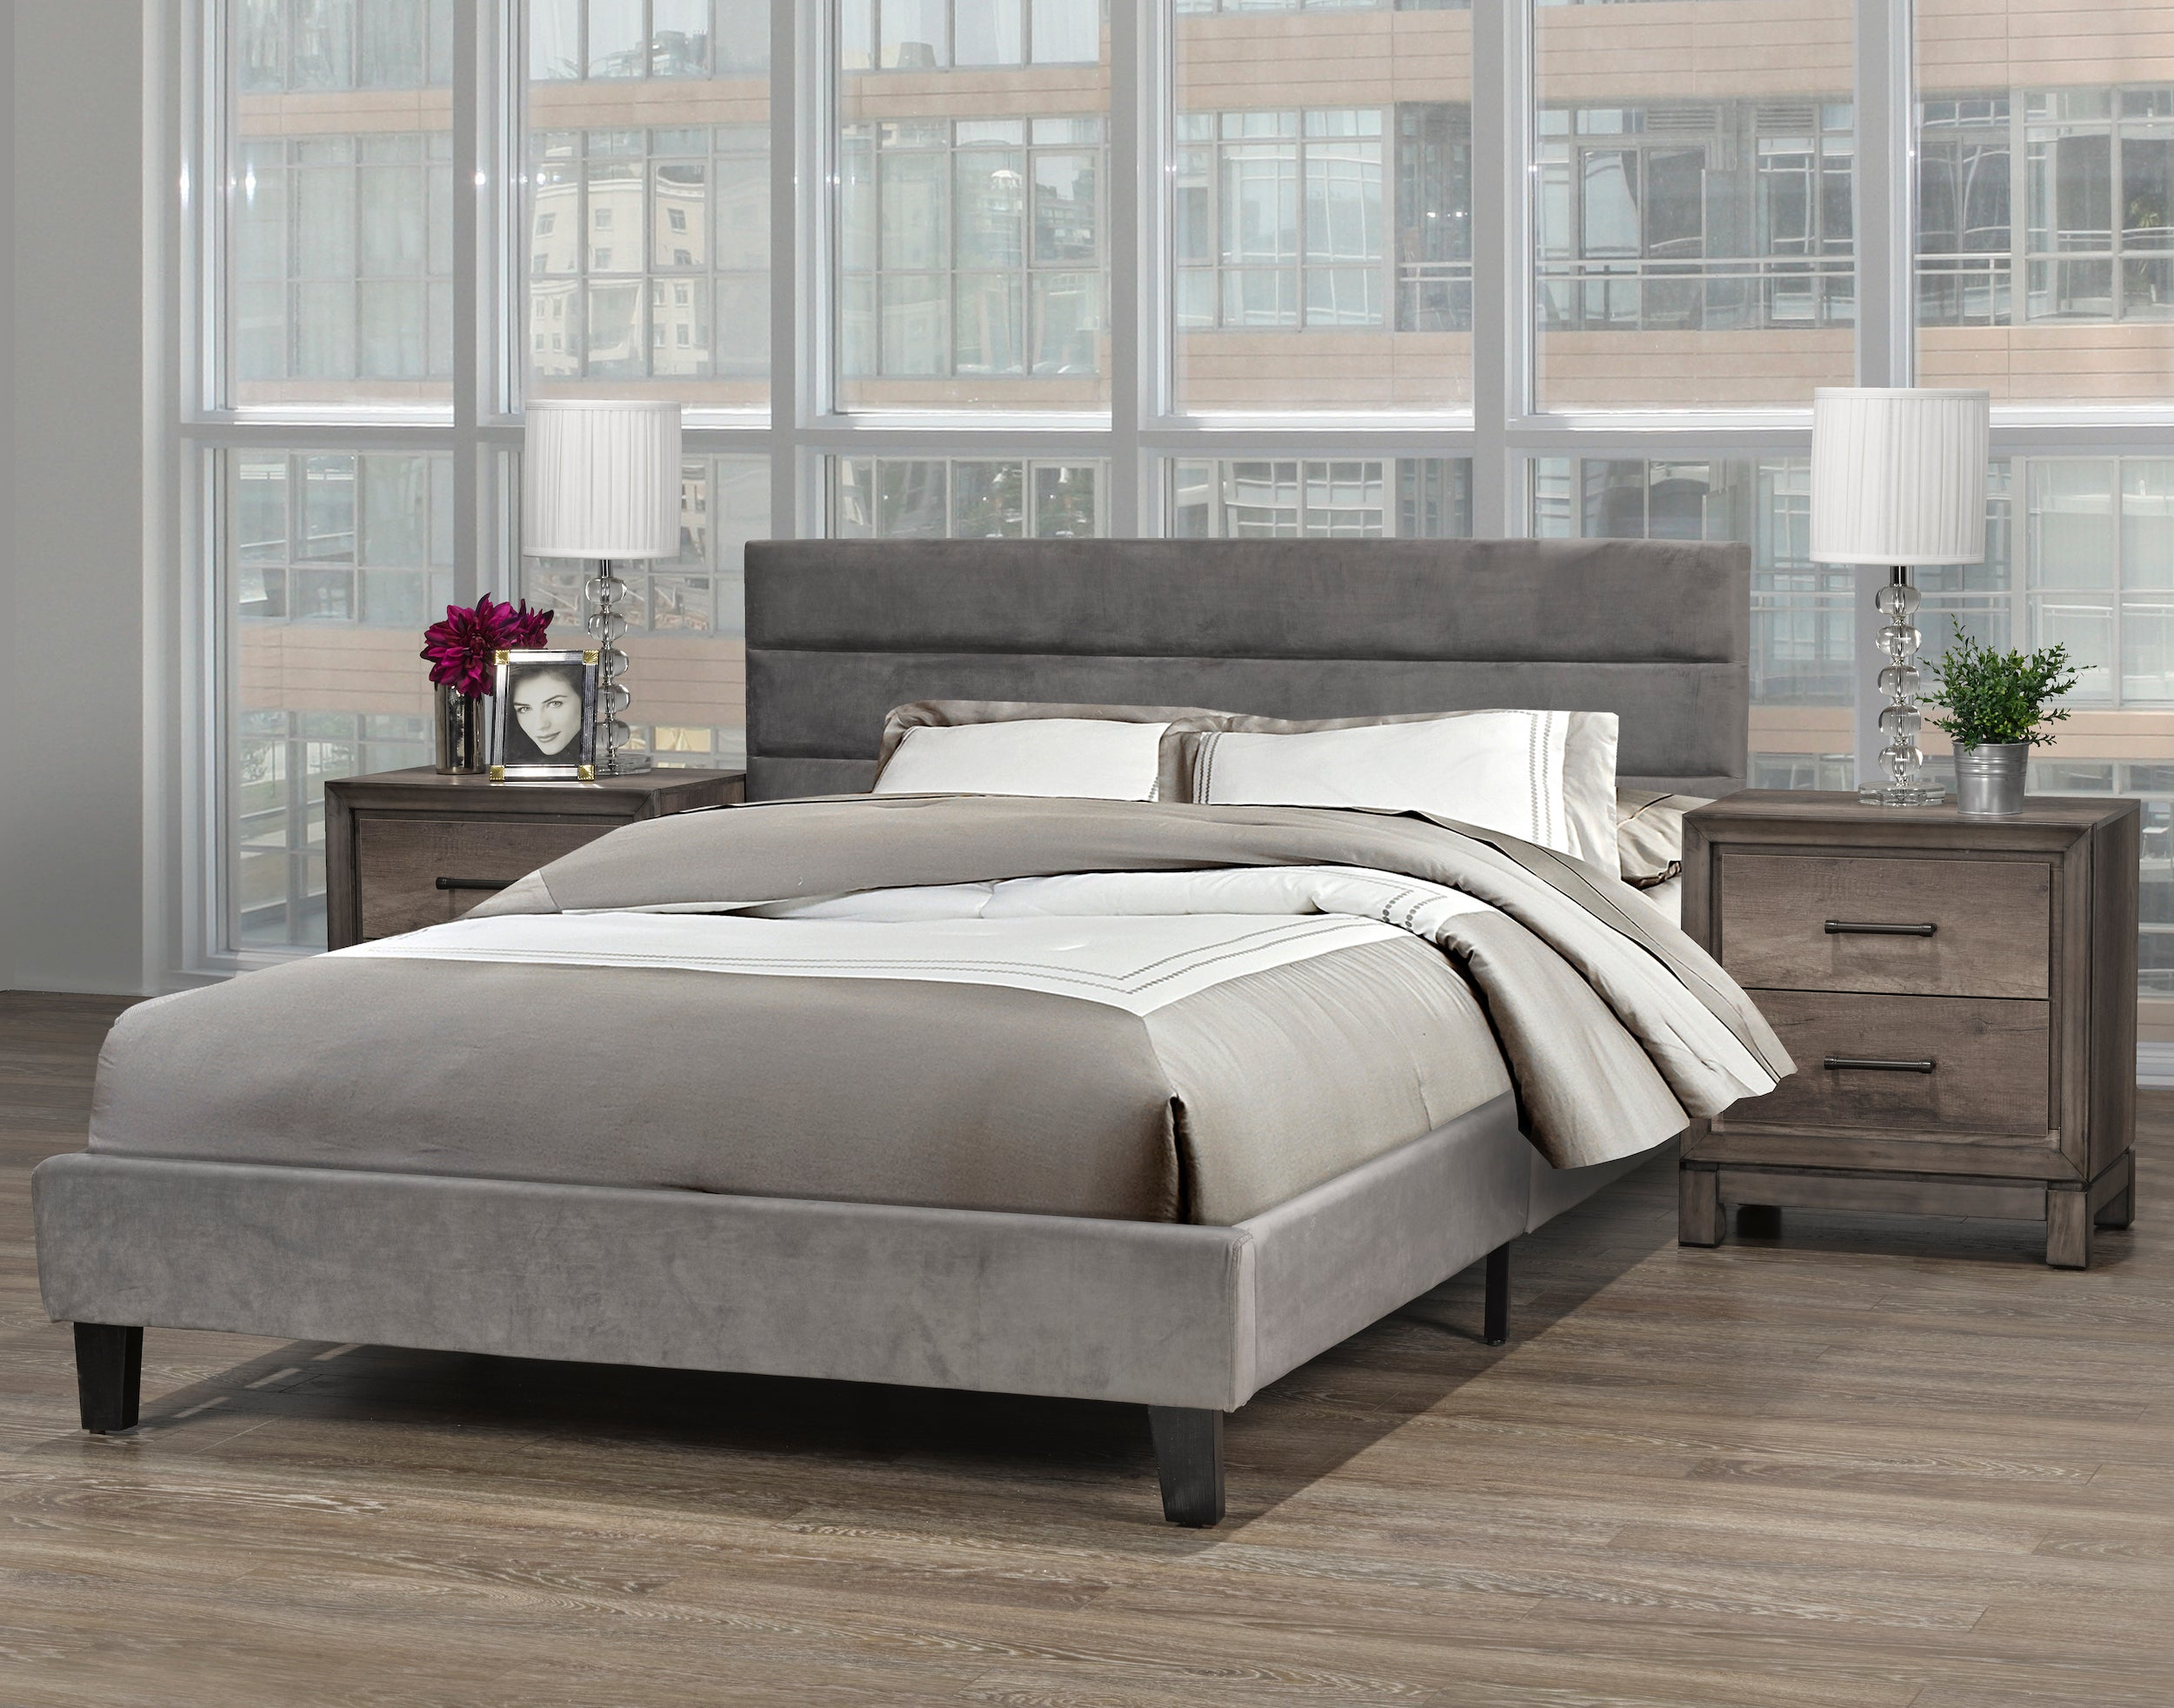 Cunningham Platform Queen Bed - Grey Velvet | Candace and Basil Furniture